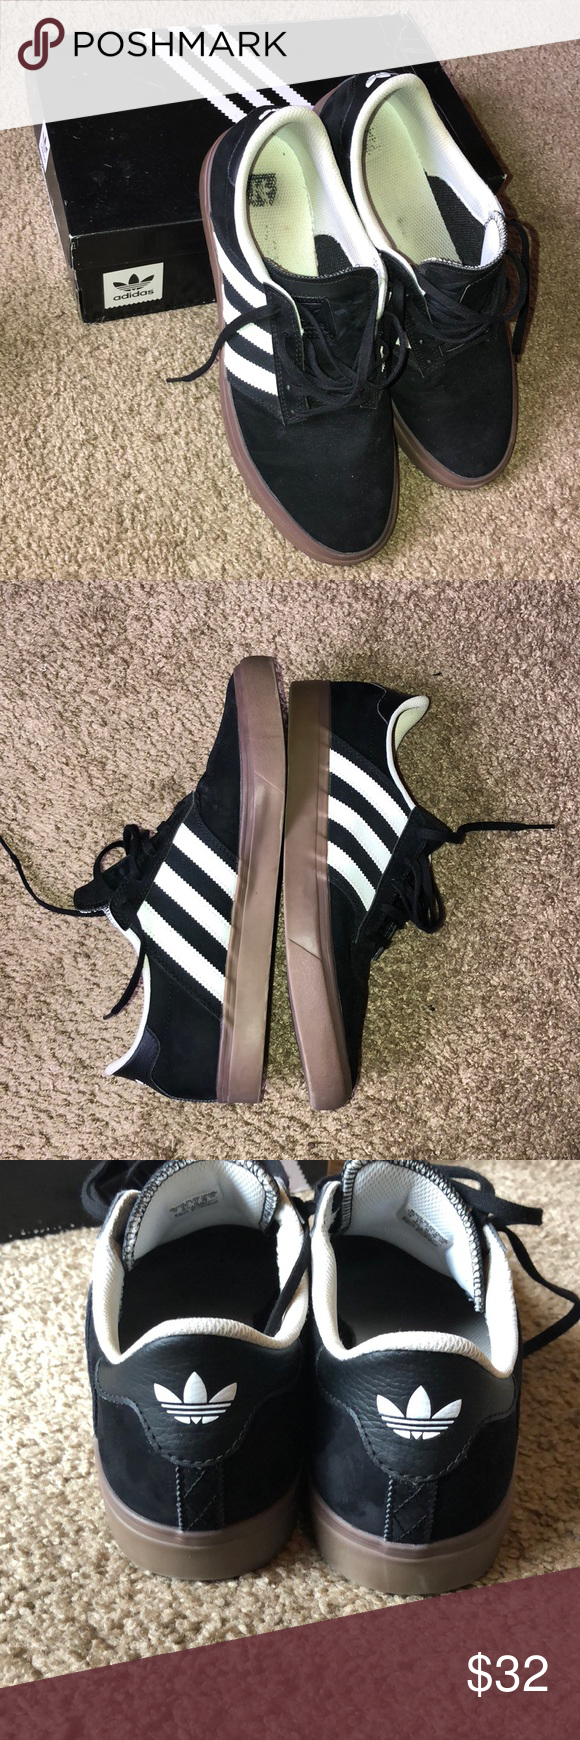 adidas seeley shoes size 10